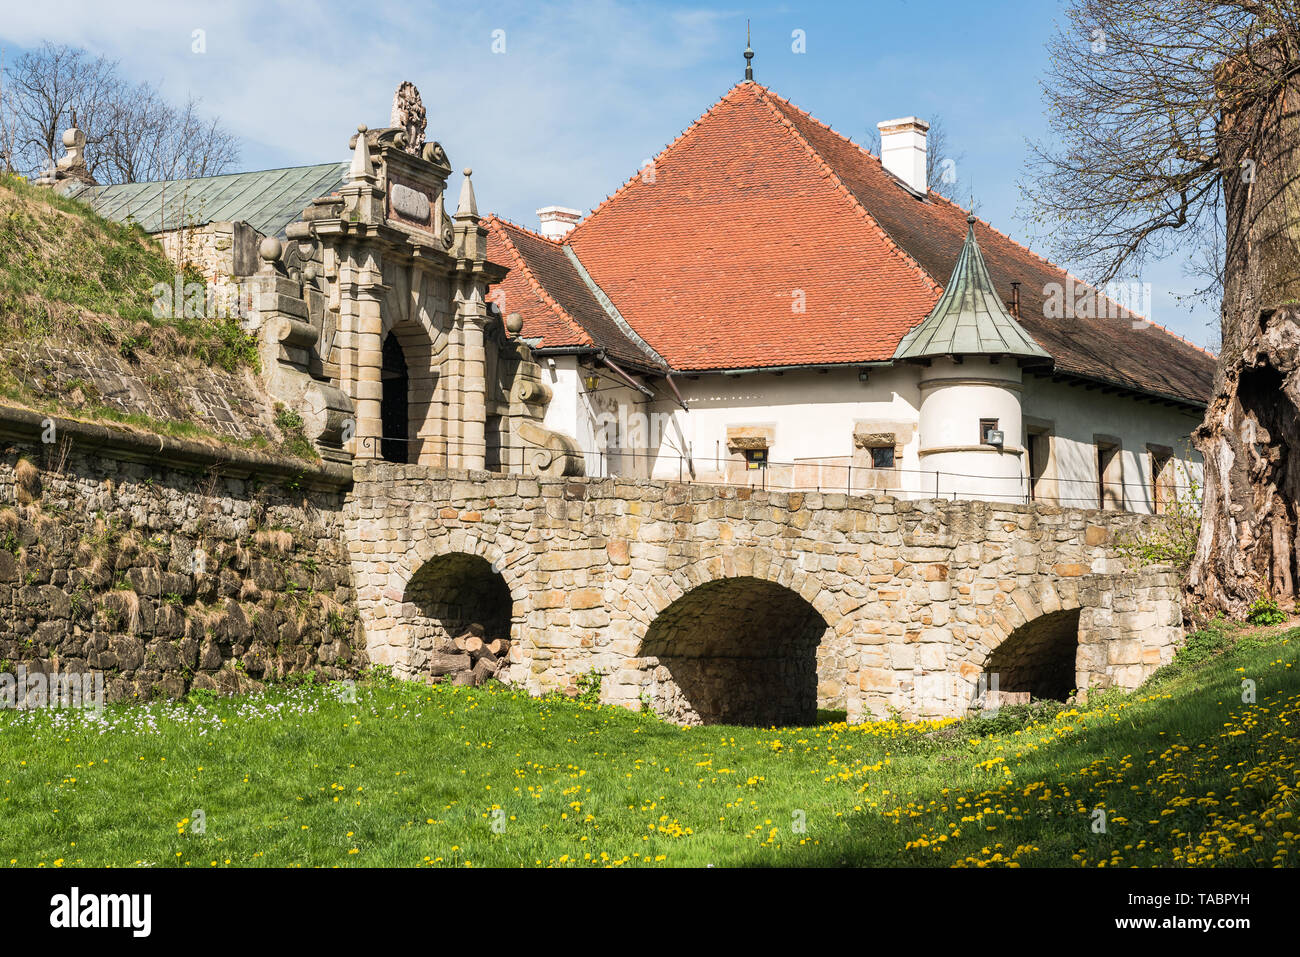 NOWY WISNICZ, POLAND - APRIL 25, 2019: Renaissance and Baroque Castle in Nowy Wisnicz, near Tarnow, in spring scenery,Poland. - Stock Image